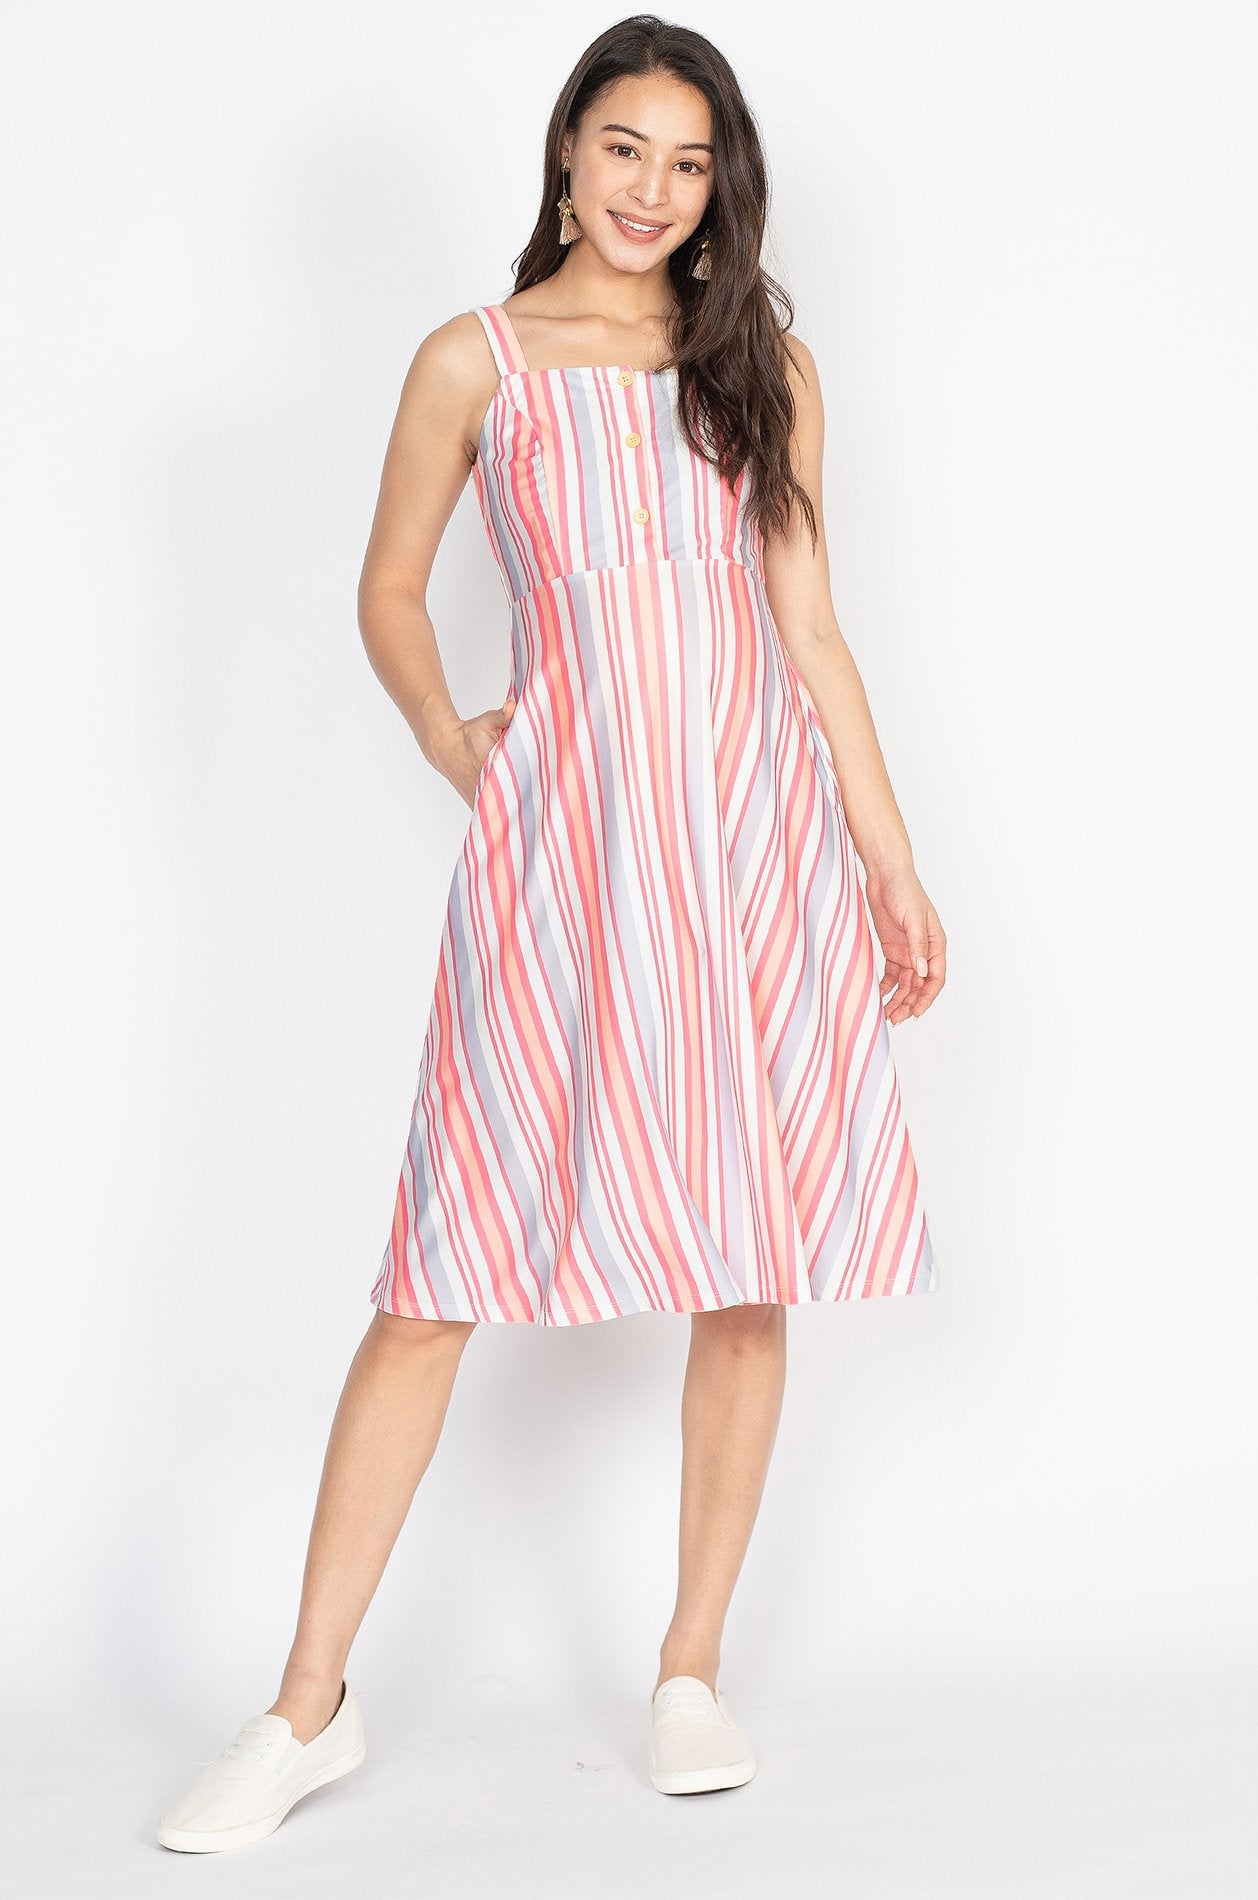 Juliet Rainbow Stripes Nursing Dress  by Jump Eat Cry - Maternity and nursing wear